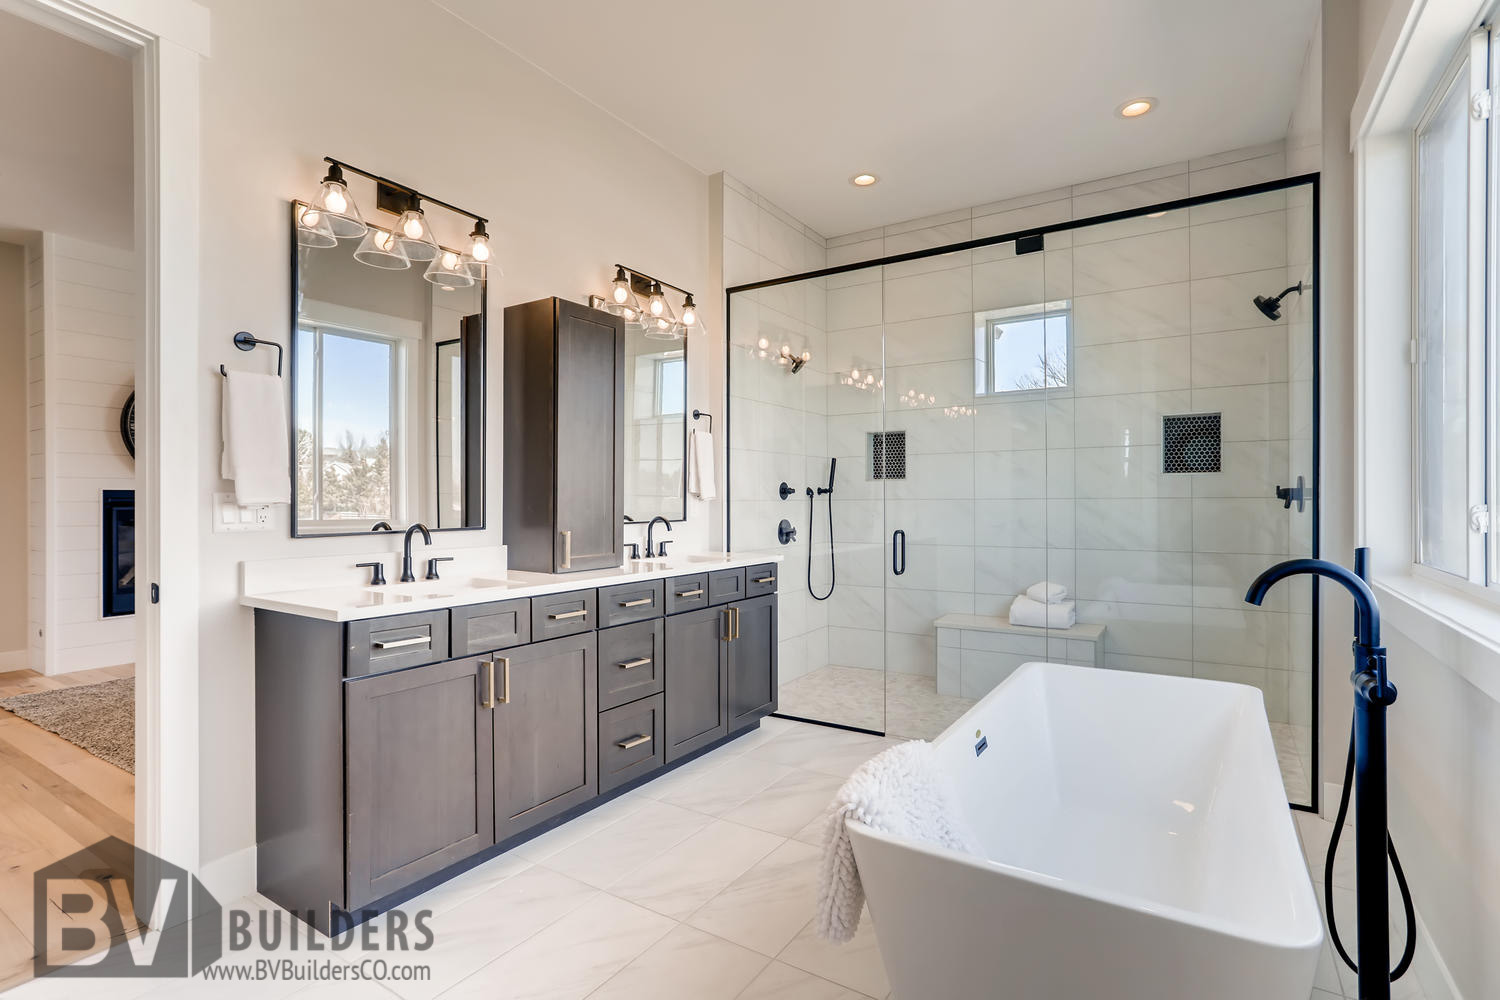 Modern farmhouse master bathroom with double vanity, soaker tub and glass shower door